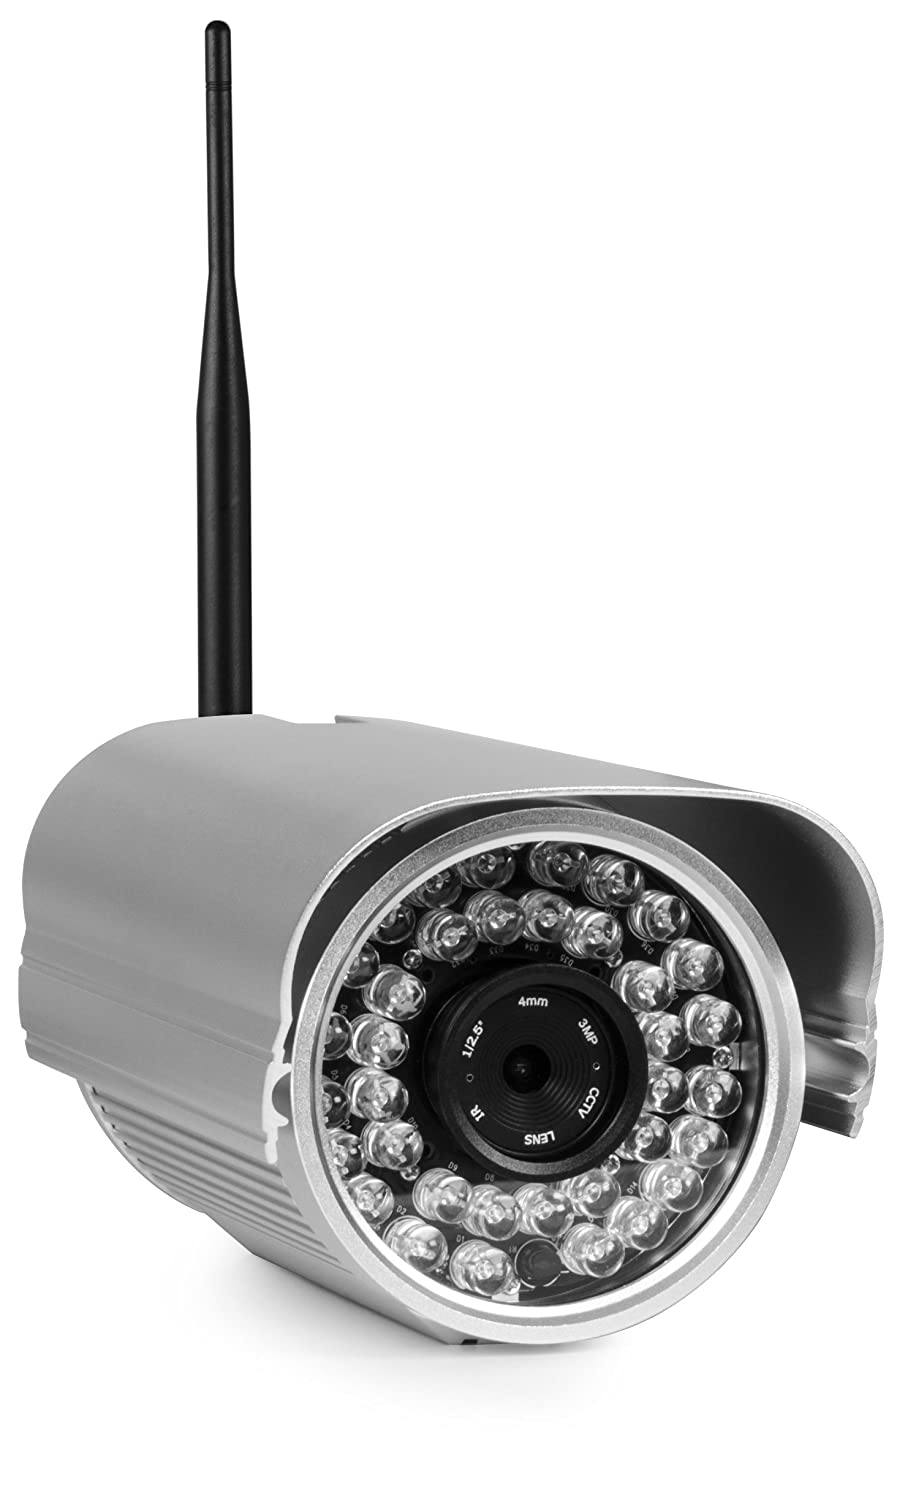 Foscam FI9805P 960P Outdoor Wireless IP Camera